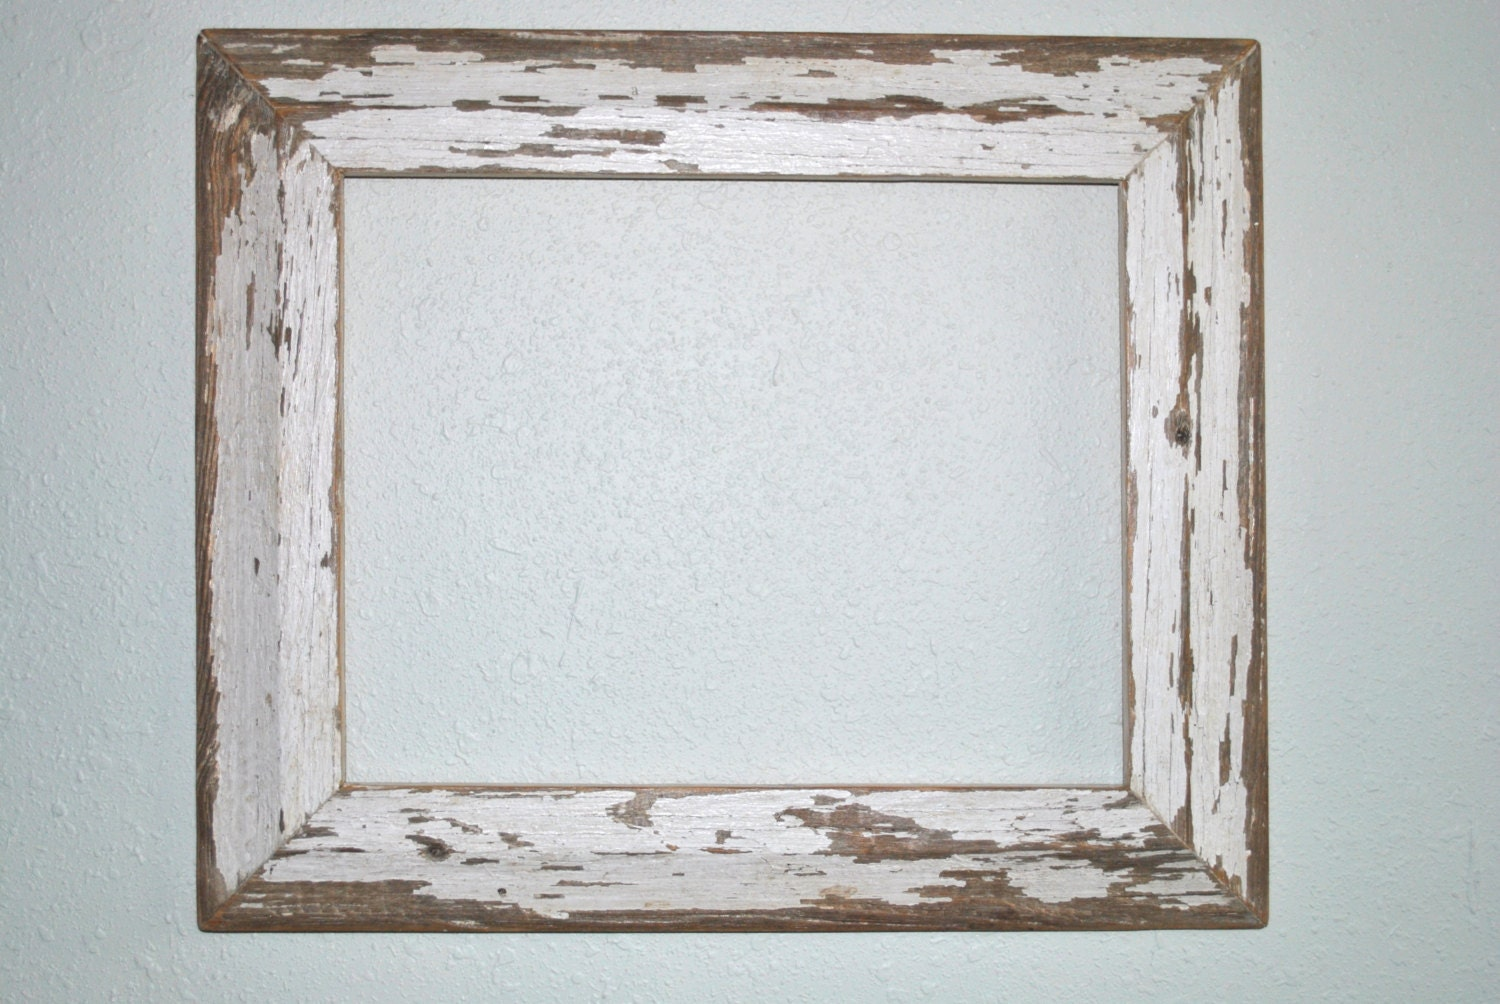 White Wood Frame : 11x14 Chippy White Wood Frame Reclaimed Old by BeamsBoardsBarns